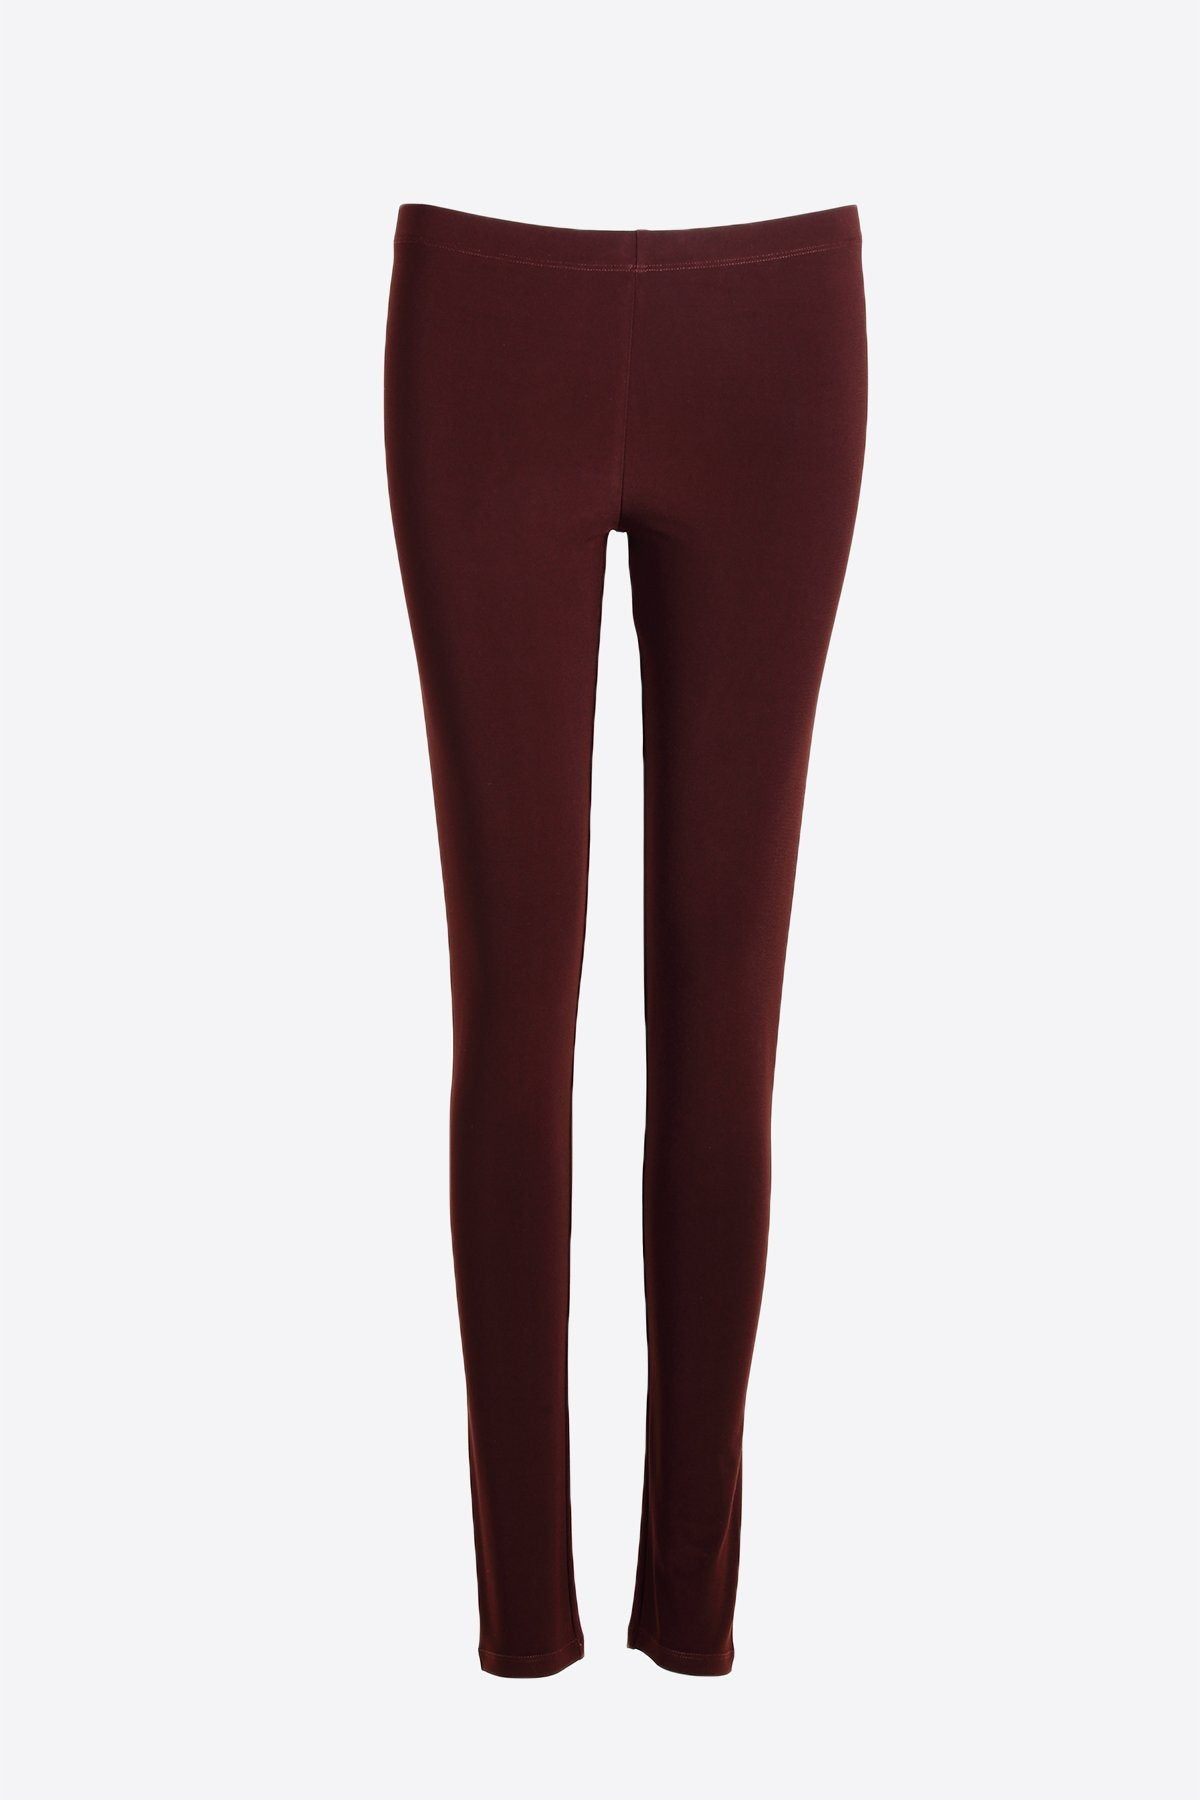 Women's Classic Leggings brown Rosarini